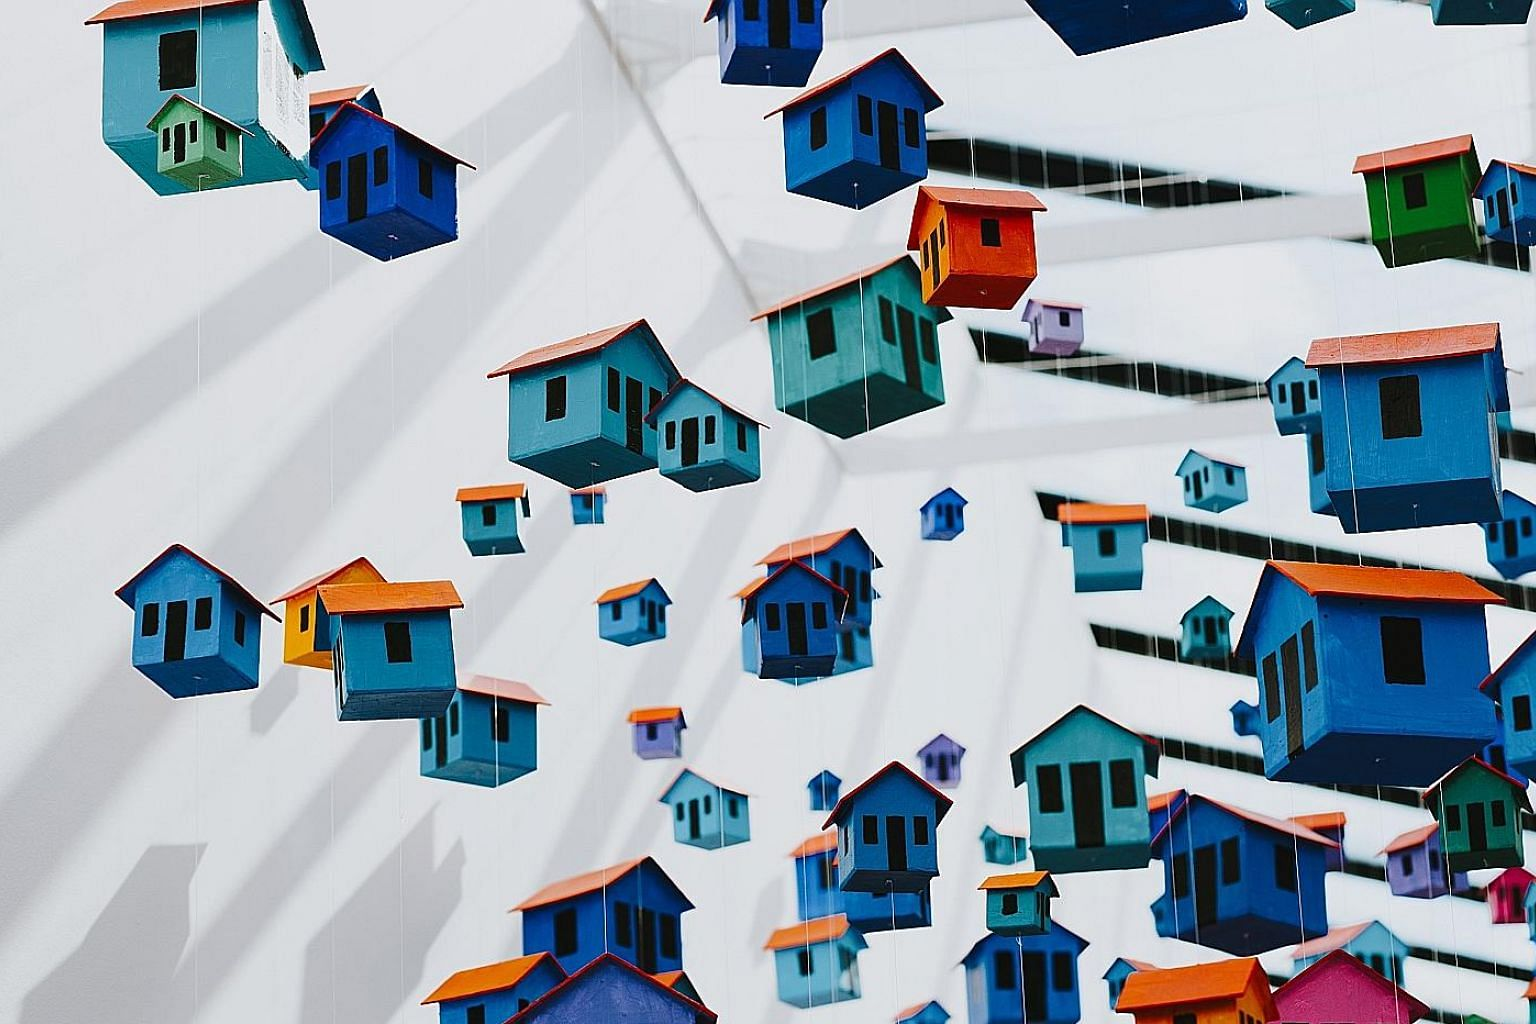 Dominican artist Fernando Tamburini's The Flying Town installation is among the artworks displayed at Sugar Hill Children's Museum of Art & Storytelling in Upper Manhattan.